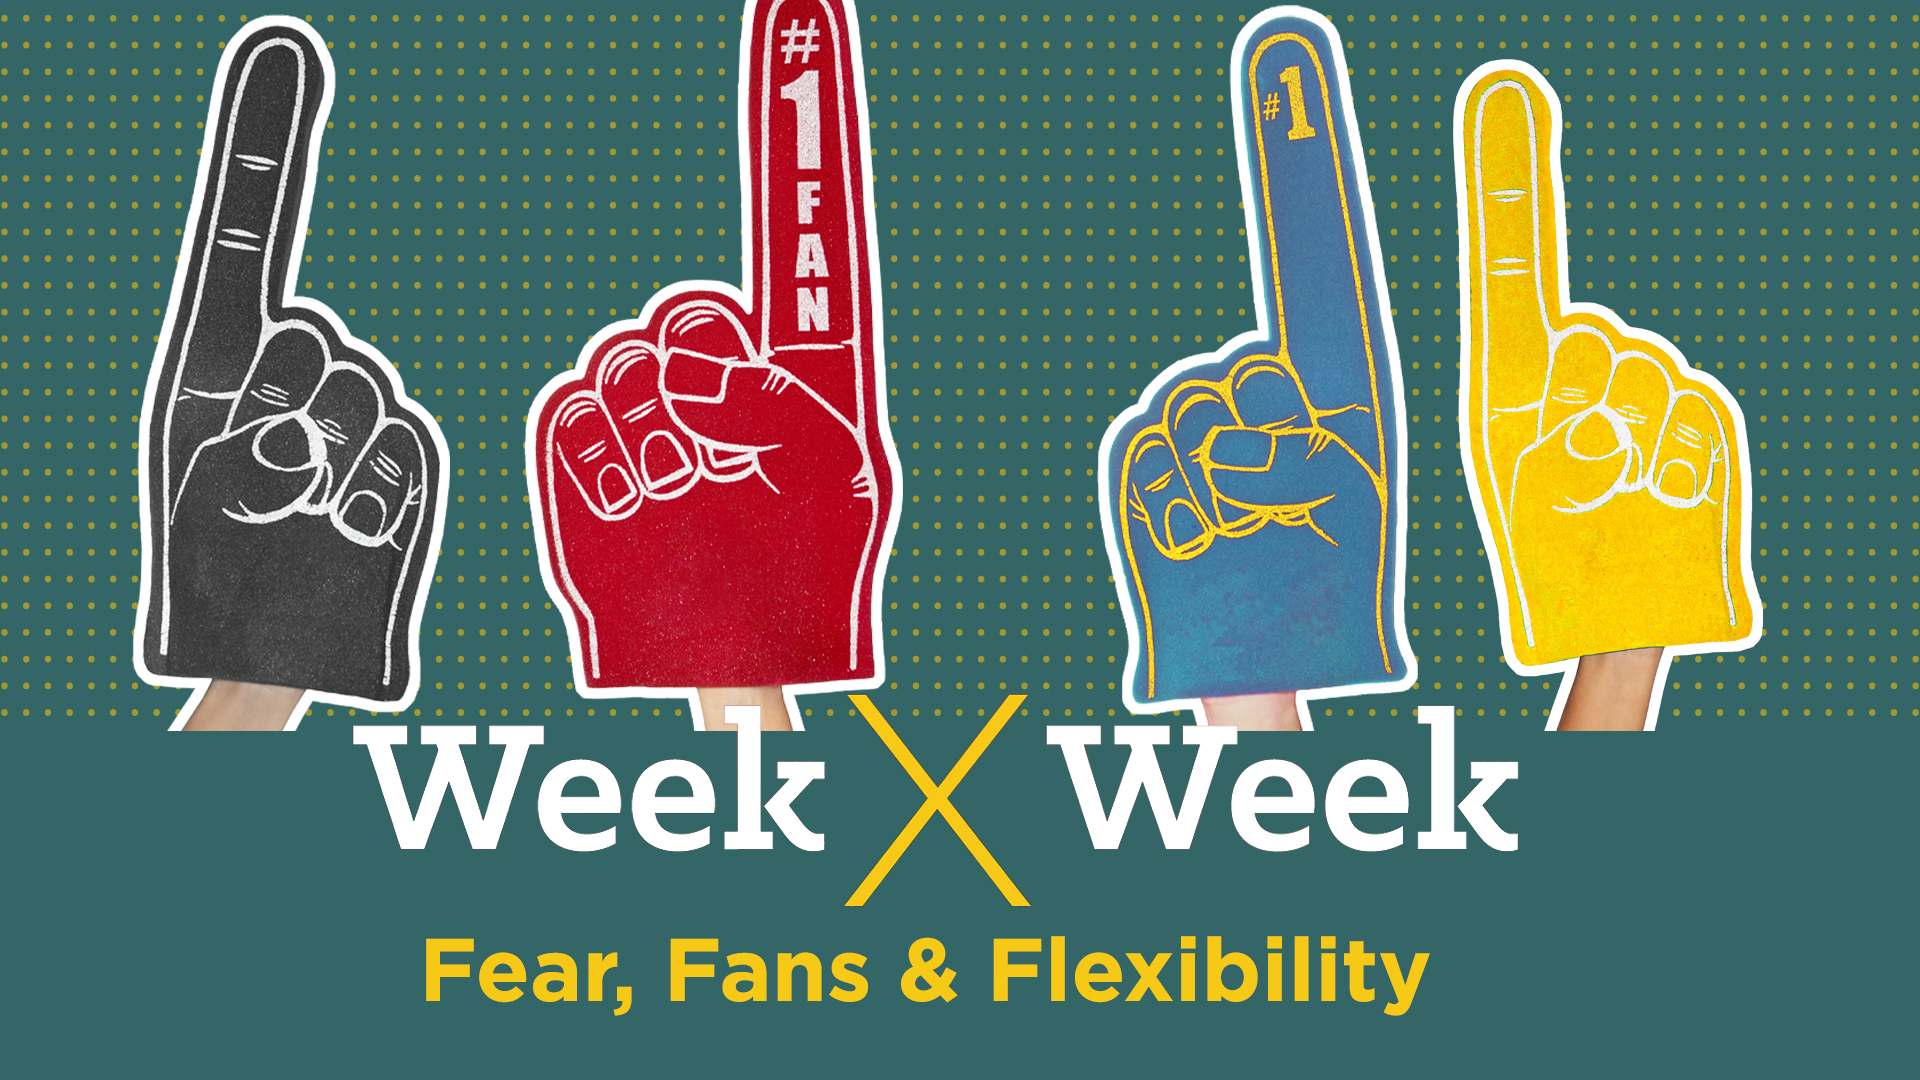 Week x Week: Fear, Fans & Flexibility Featured Image